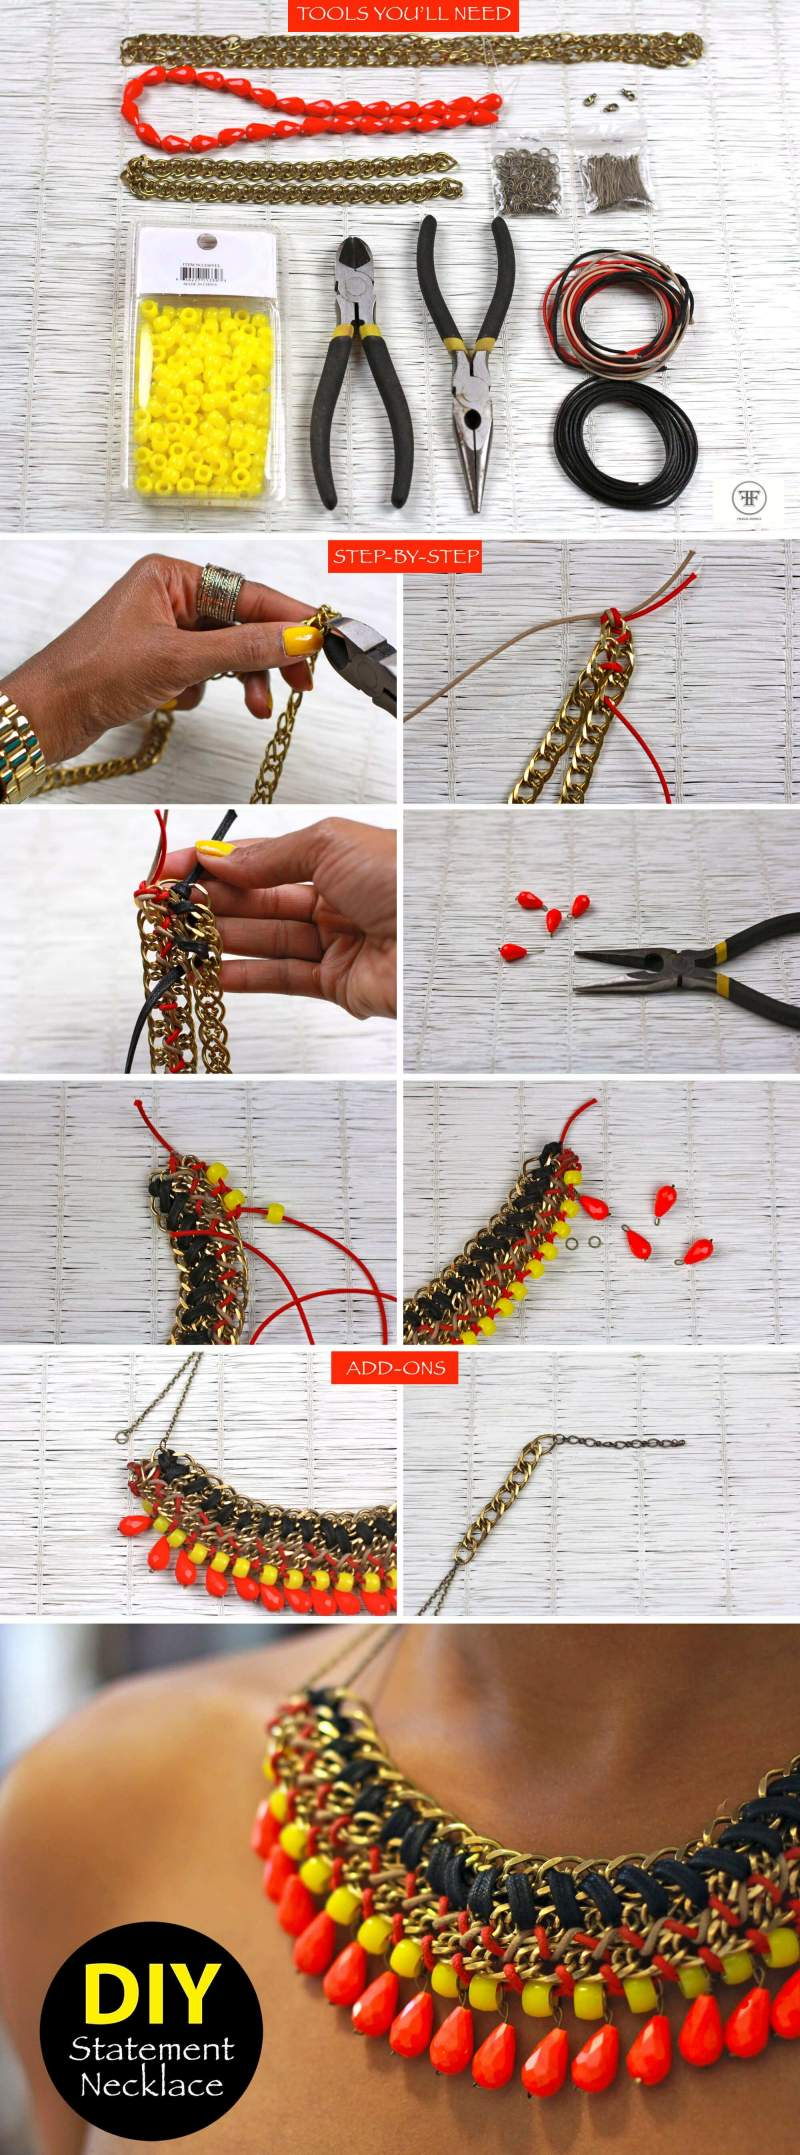 diy-statement-necklace-jewelry-tutorial